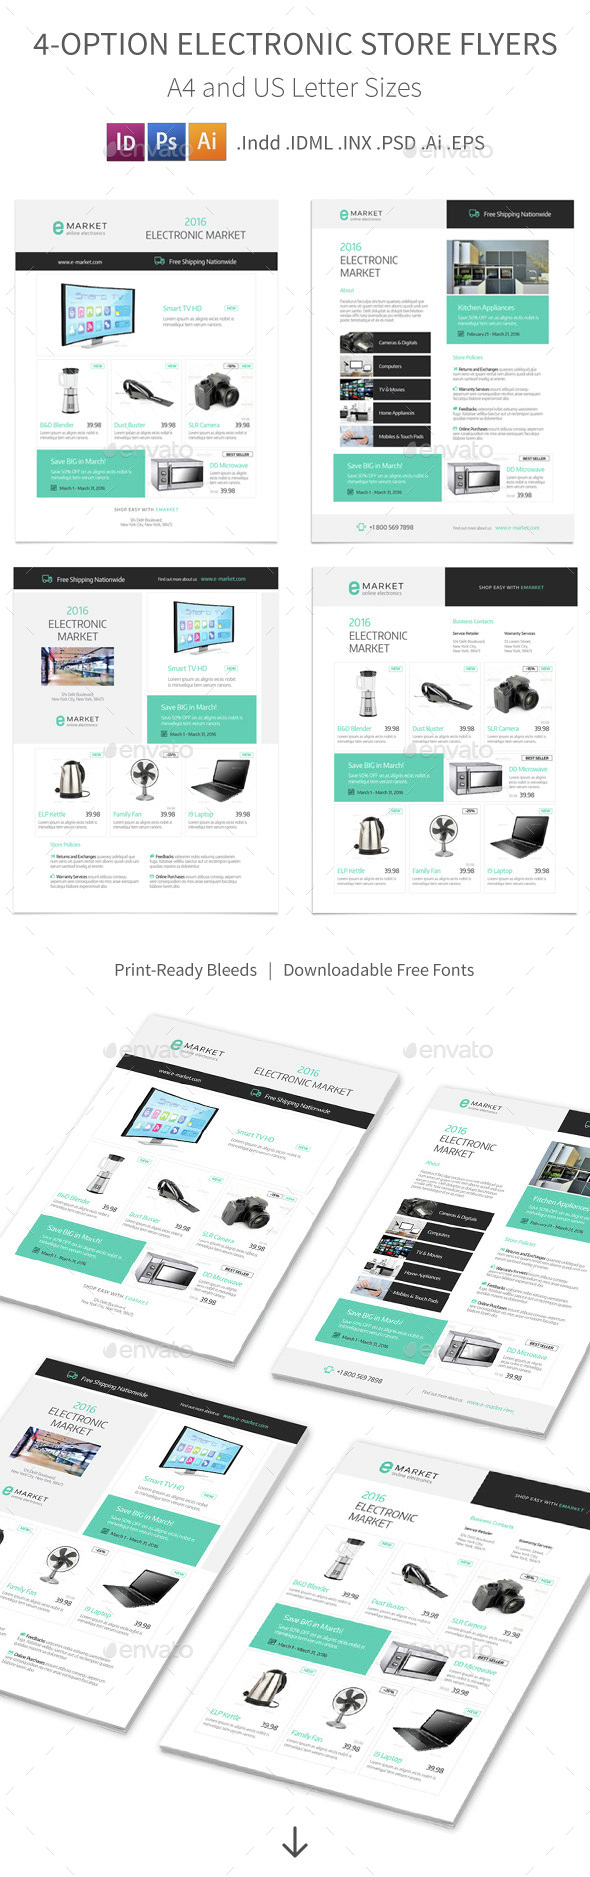 Electronic Store Flyers – 4 Options - Corporate Flyers